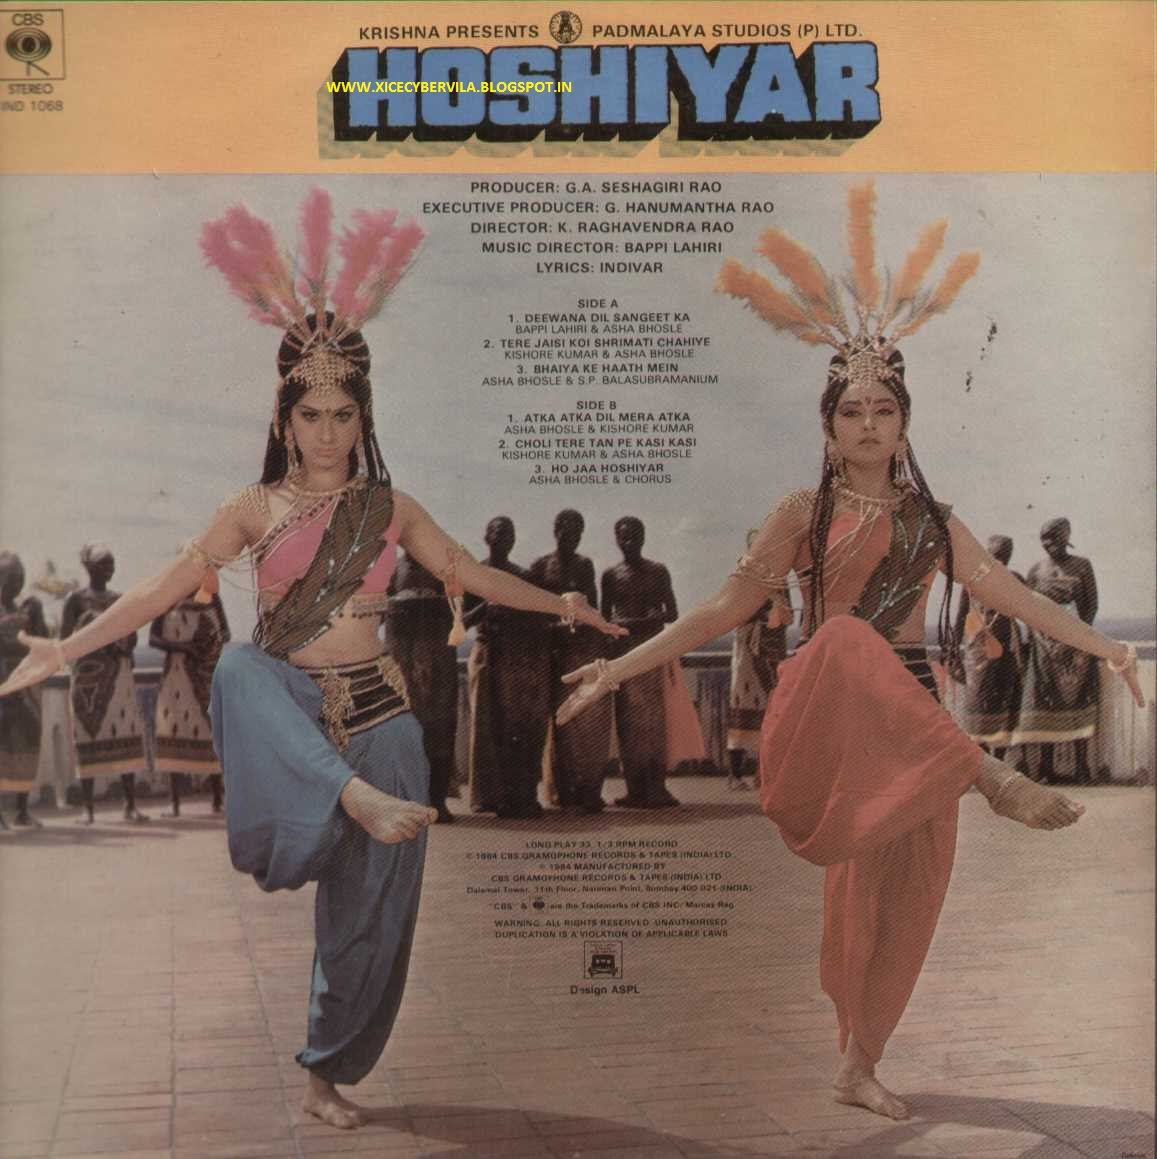 Koi Puche Mere Dil Pe Mp3 Song Download: COLLEGE PROJECTS AND MUSIC JUNCTION: HOSHIYAR (1985) / OST